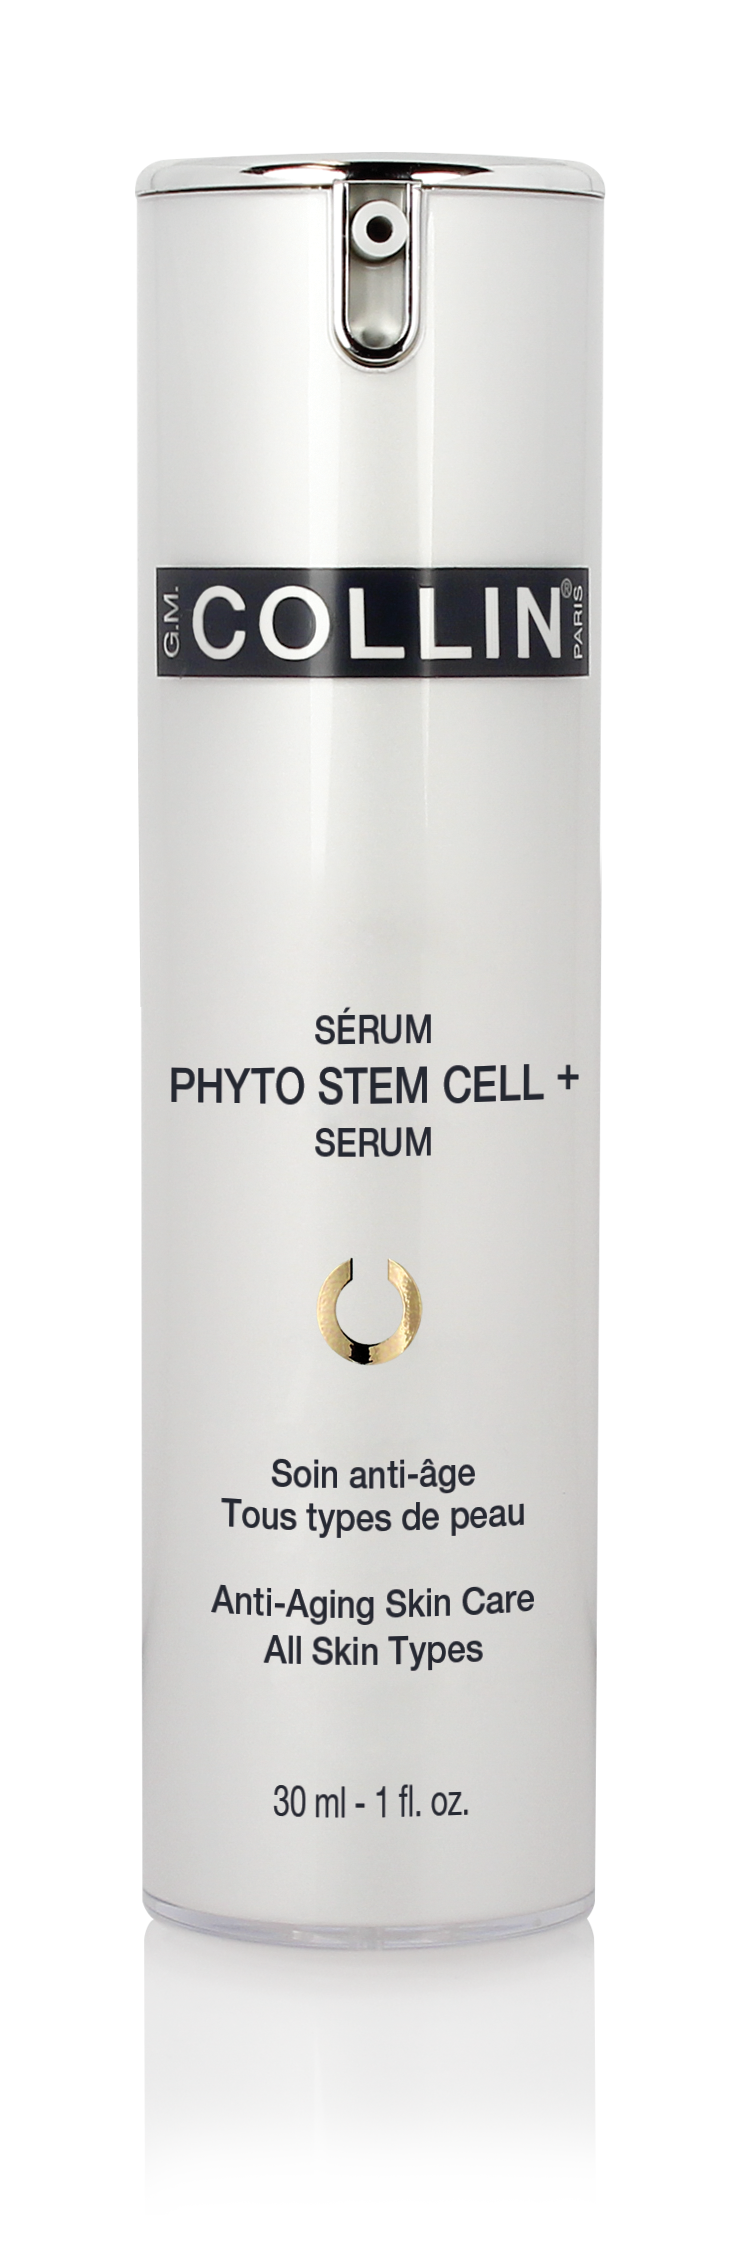 serum phyto stem cell